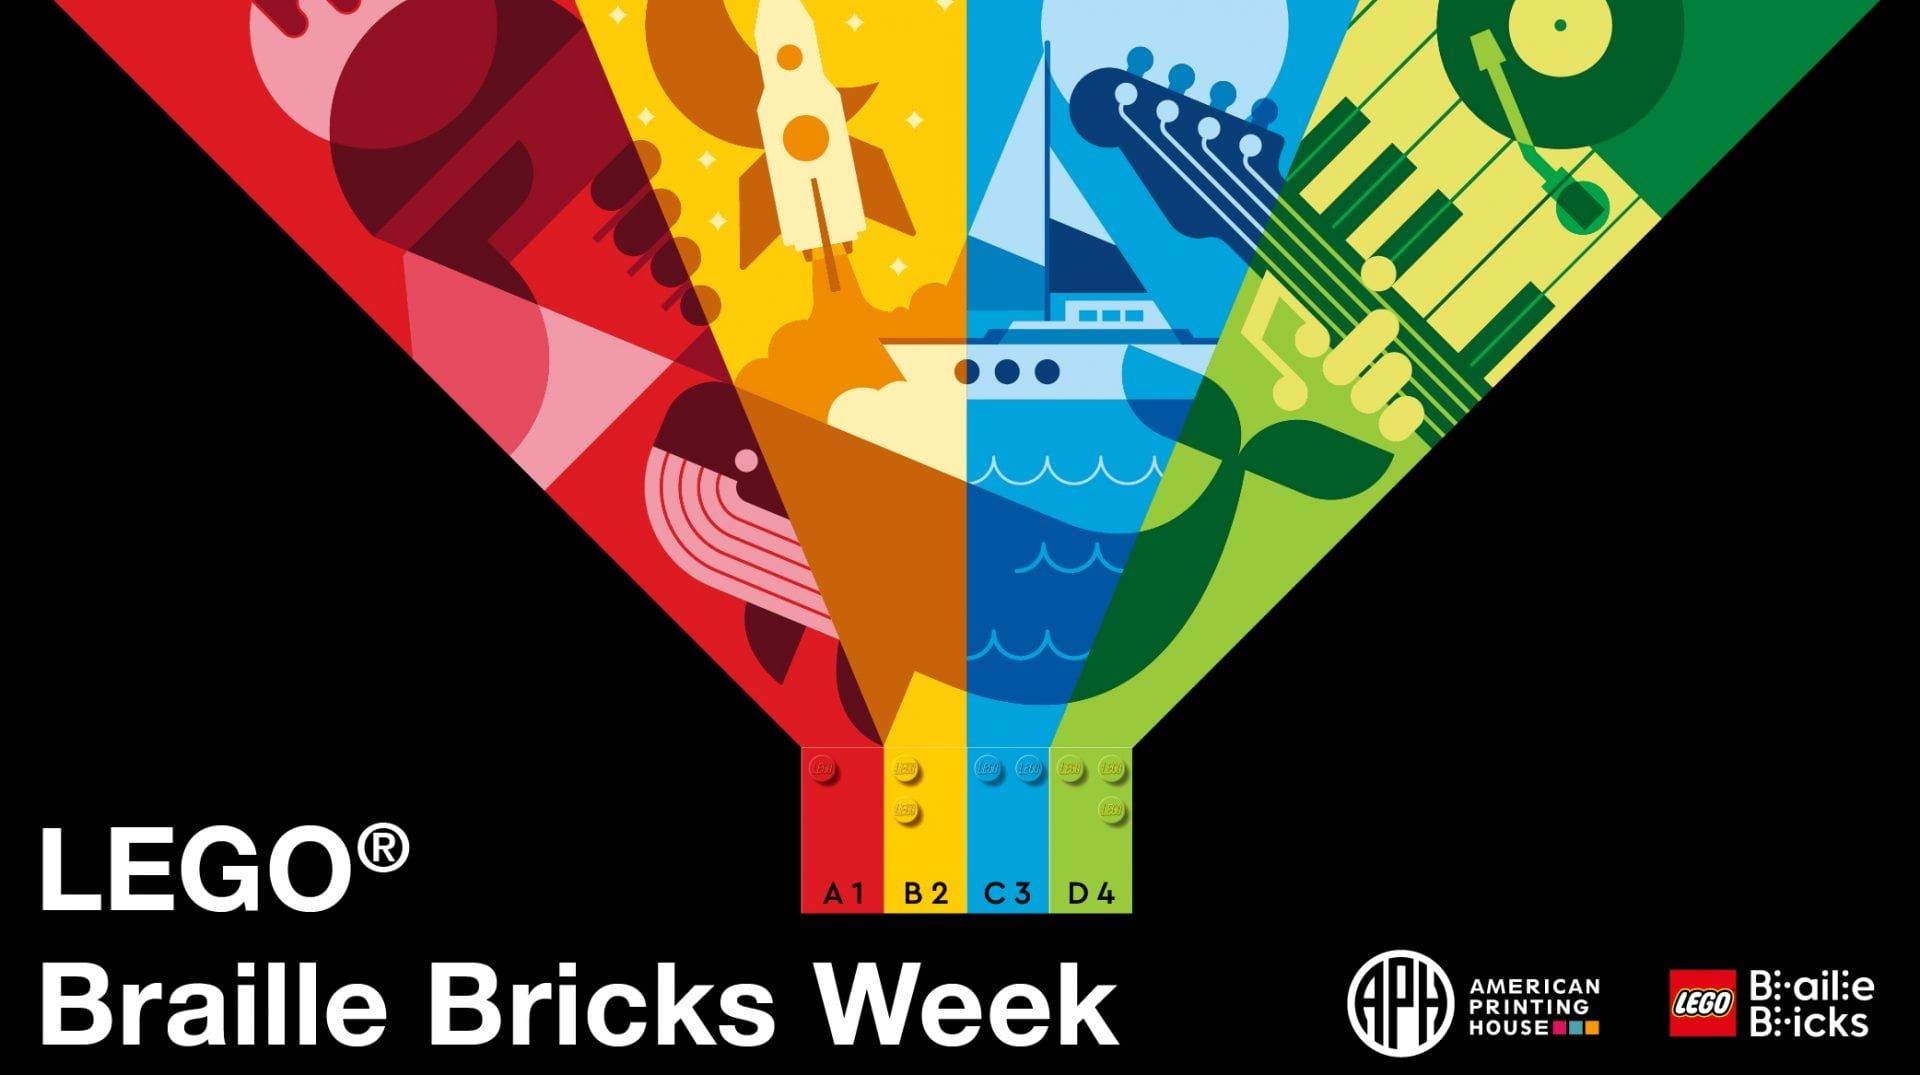 "a design consisting of 4 LEGO braille bricks in red, yellow, blue, and green, from the legos, rays of the corresponding colors shine out like a light house. in the rays are a variety of objects like an ice cream cone, a guitar, a whale, a sail boat, and a rocket ship. text reads ""LEGO Braille Bricks Week"" APH logo, LEGO Braille Bricks logo"